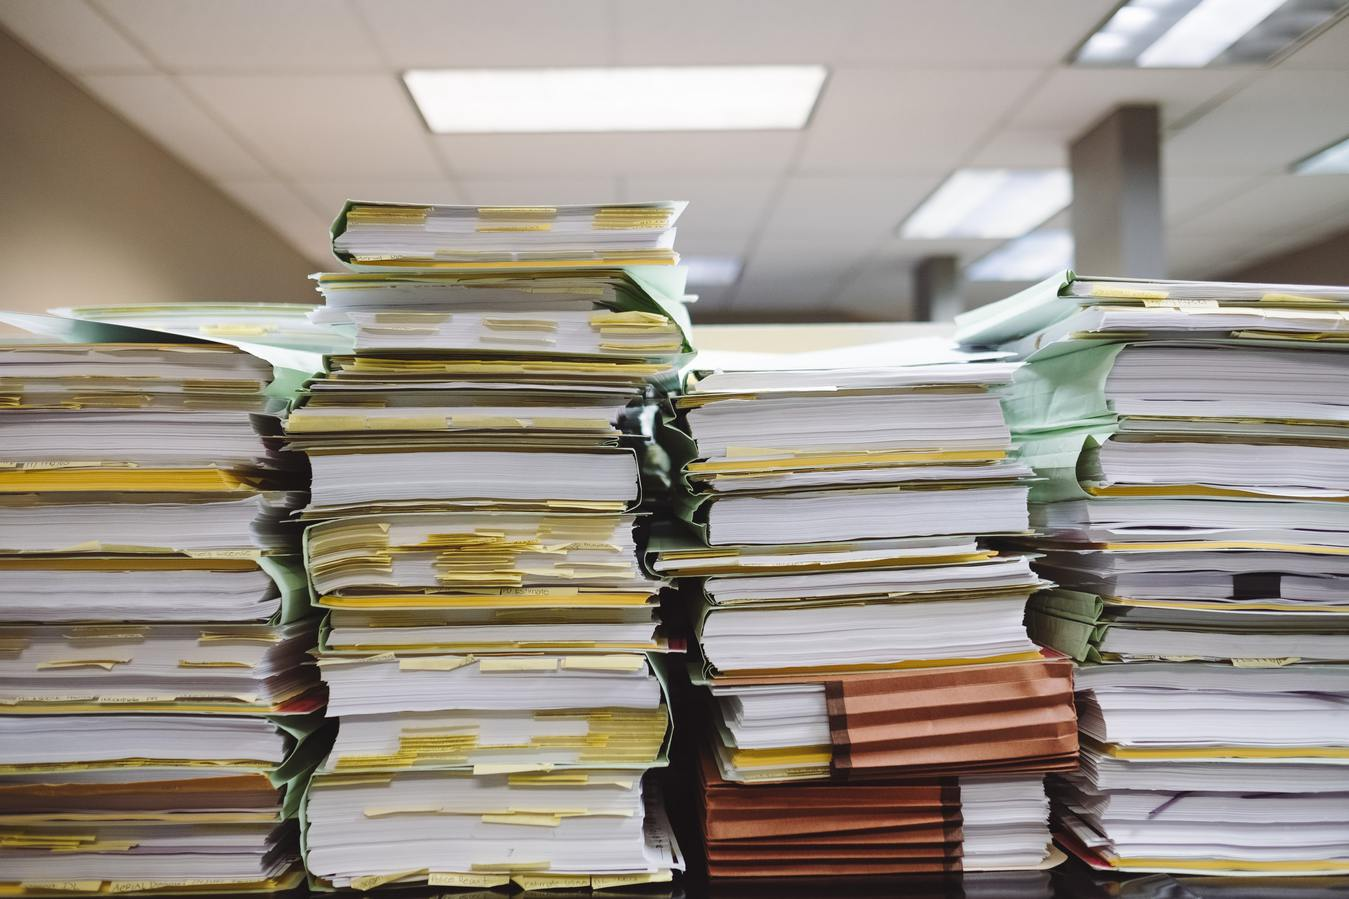 Pile of papers in an office